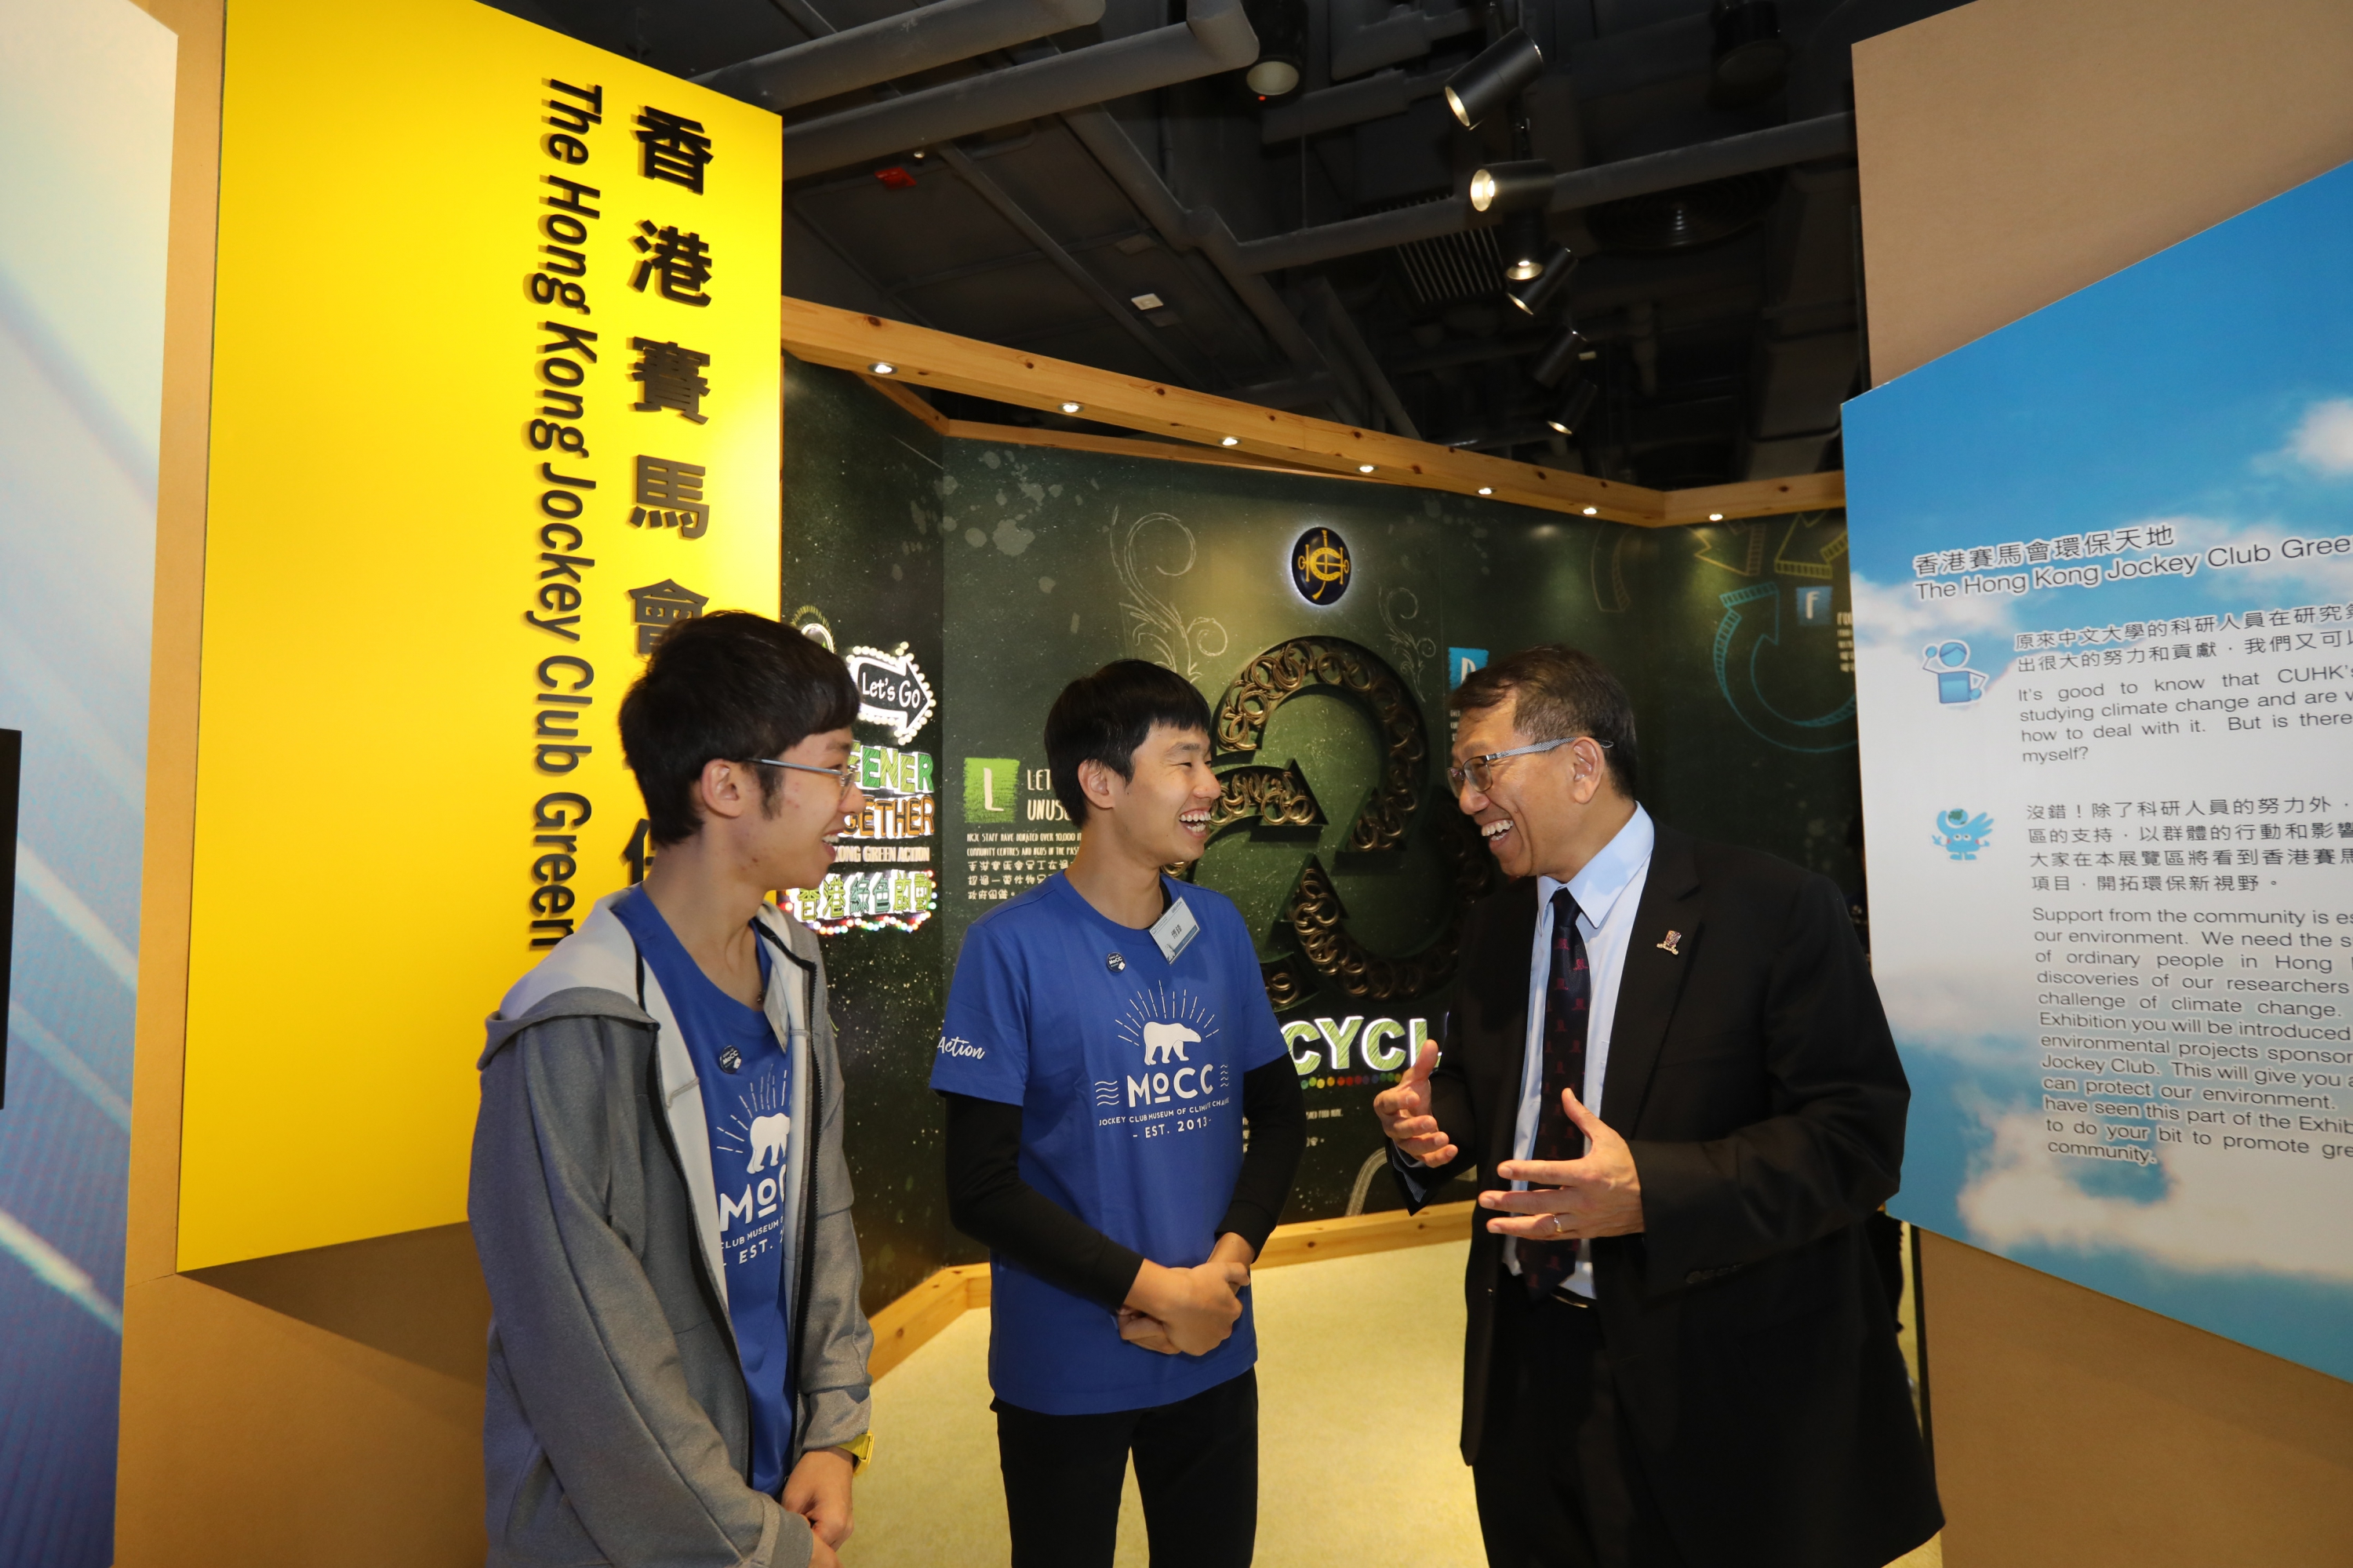 Professor Tuan visits the Jockey Club Museum of Climate Change in CUHK